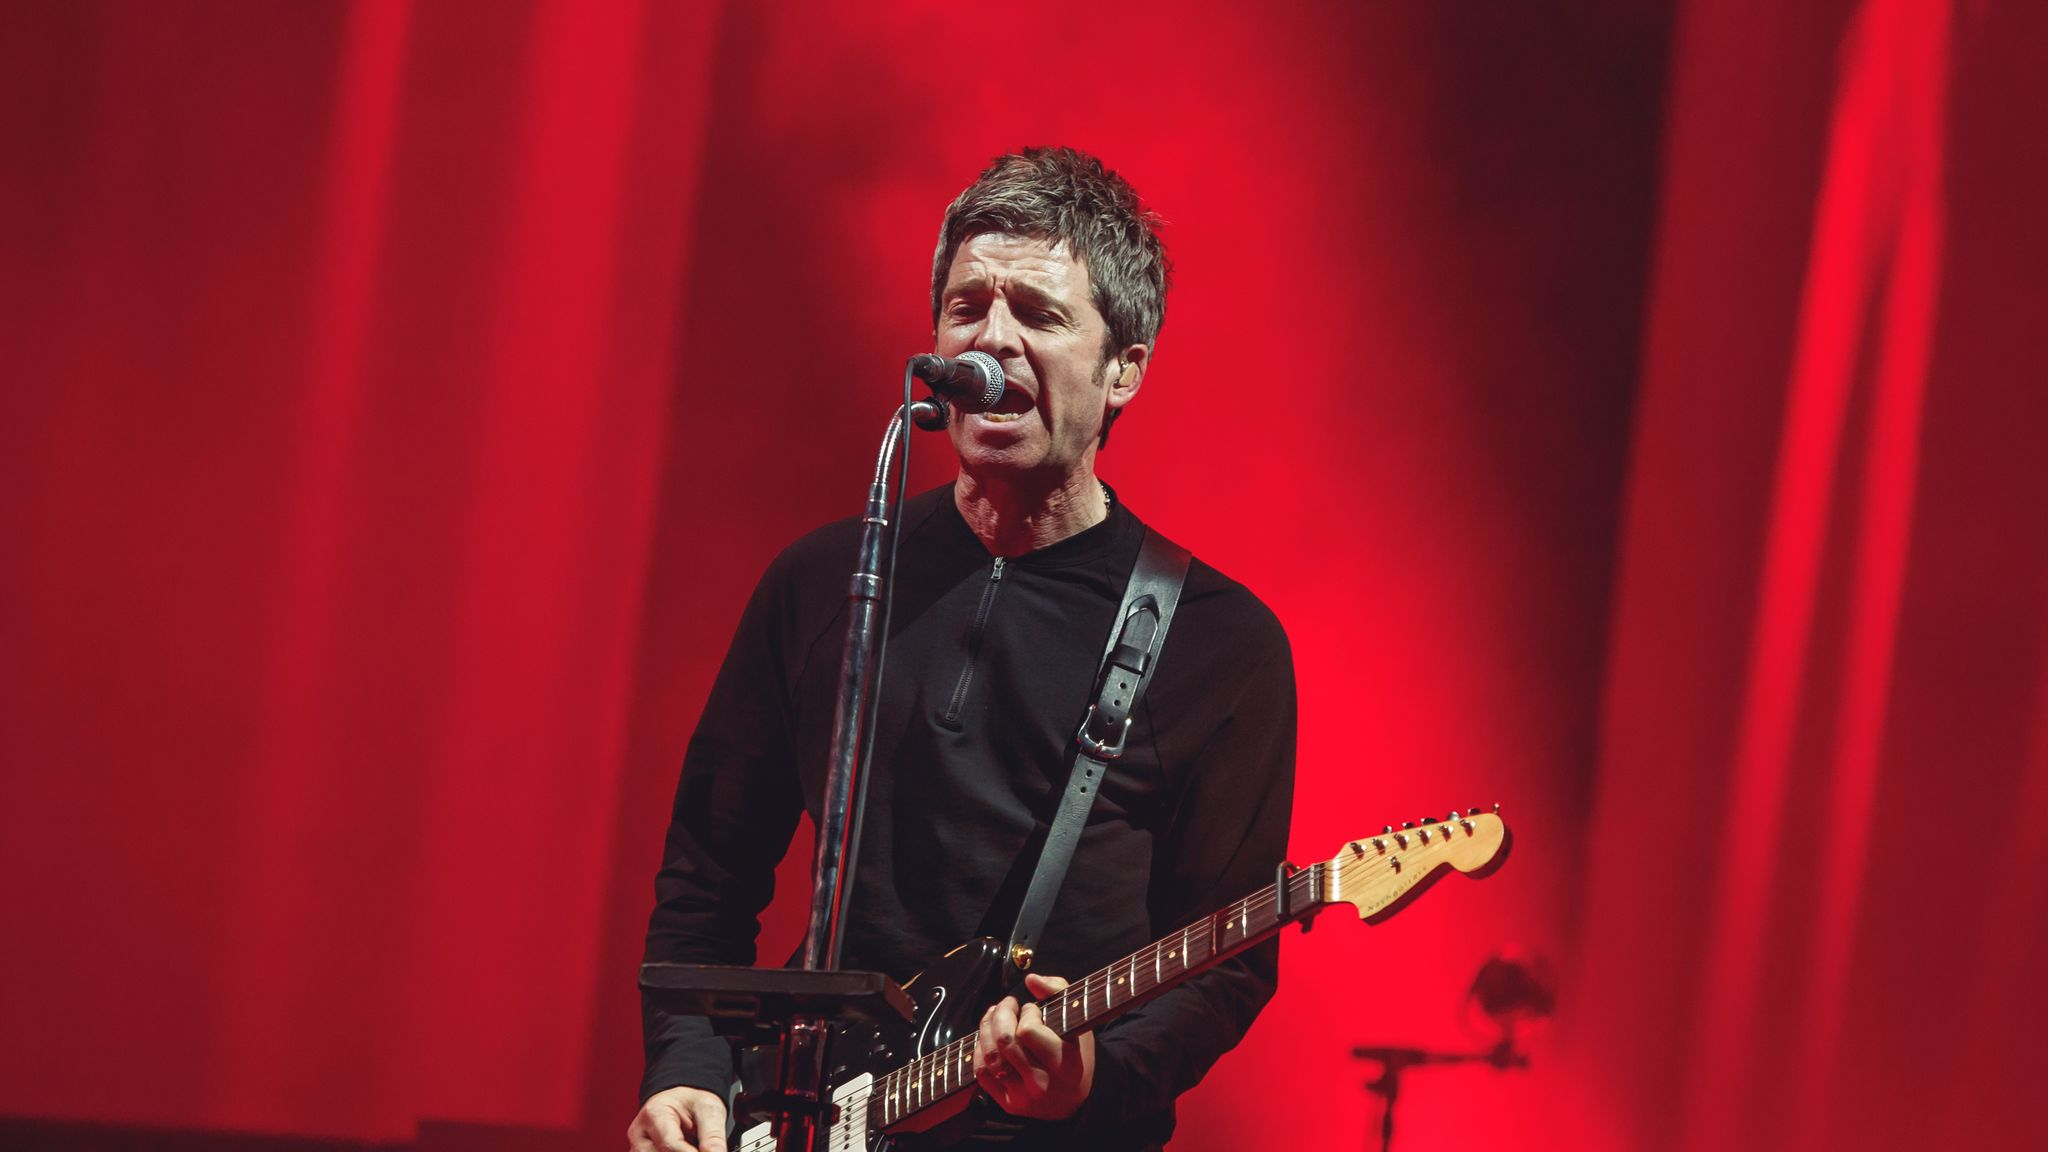 MADRID, SPAIN - JULY 11: Noel Gallagher from the band High Flying Birds perfoms on stage a Madcool Festival on July 11, 2019 in Madrid, Spain. (Photo by Javier Bragado/WireImage)